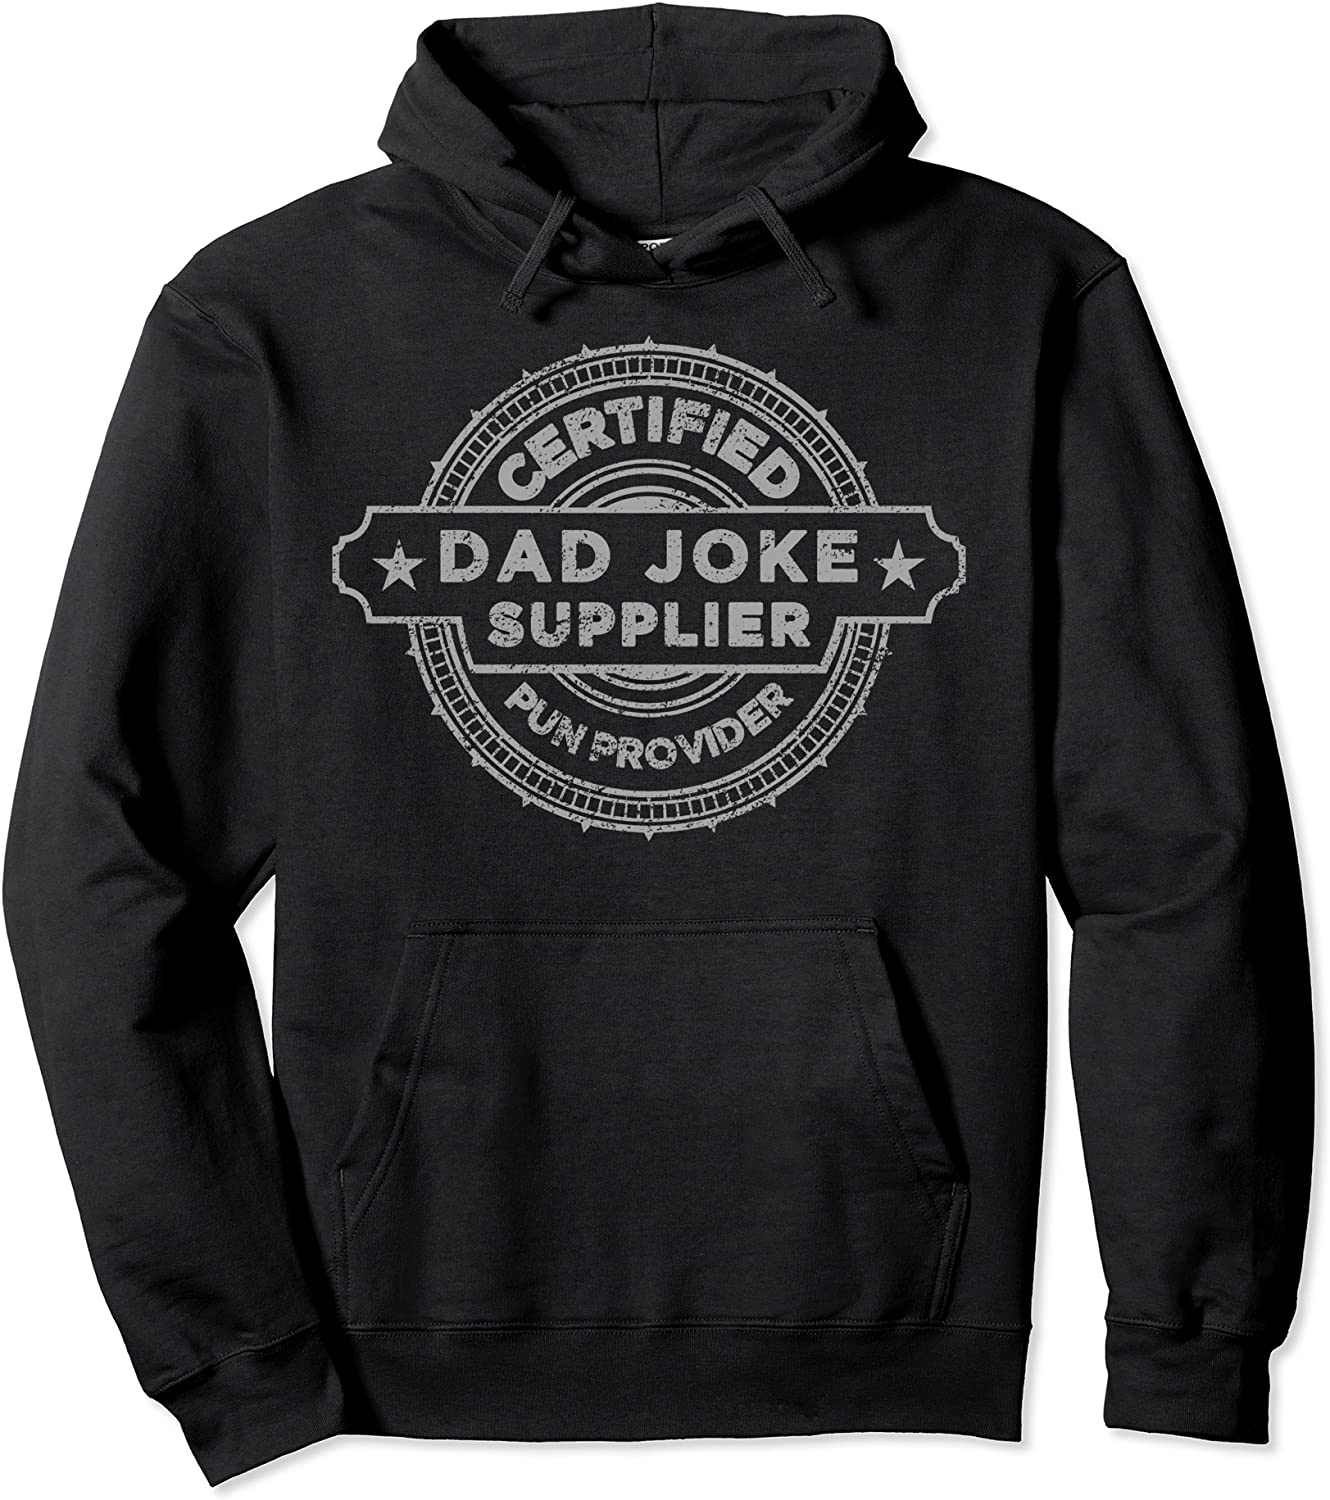 Certified Pun Provider Dad Max Some reservation 90% OFF Joke Pullover Supplier Hoodie